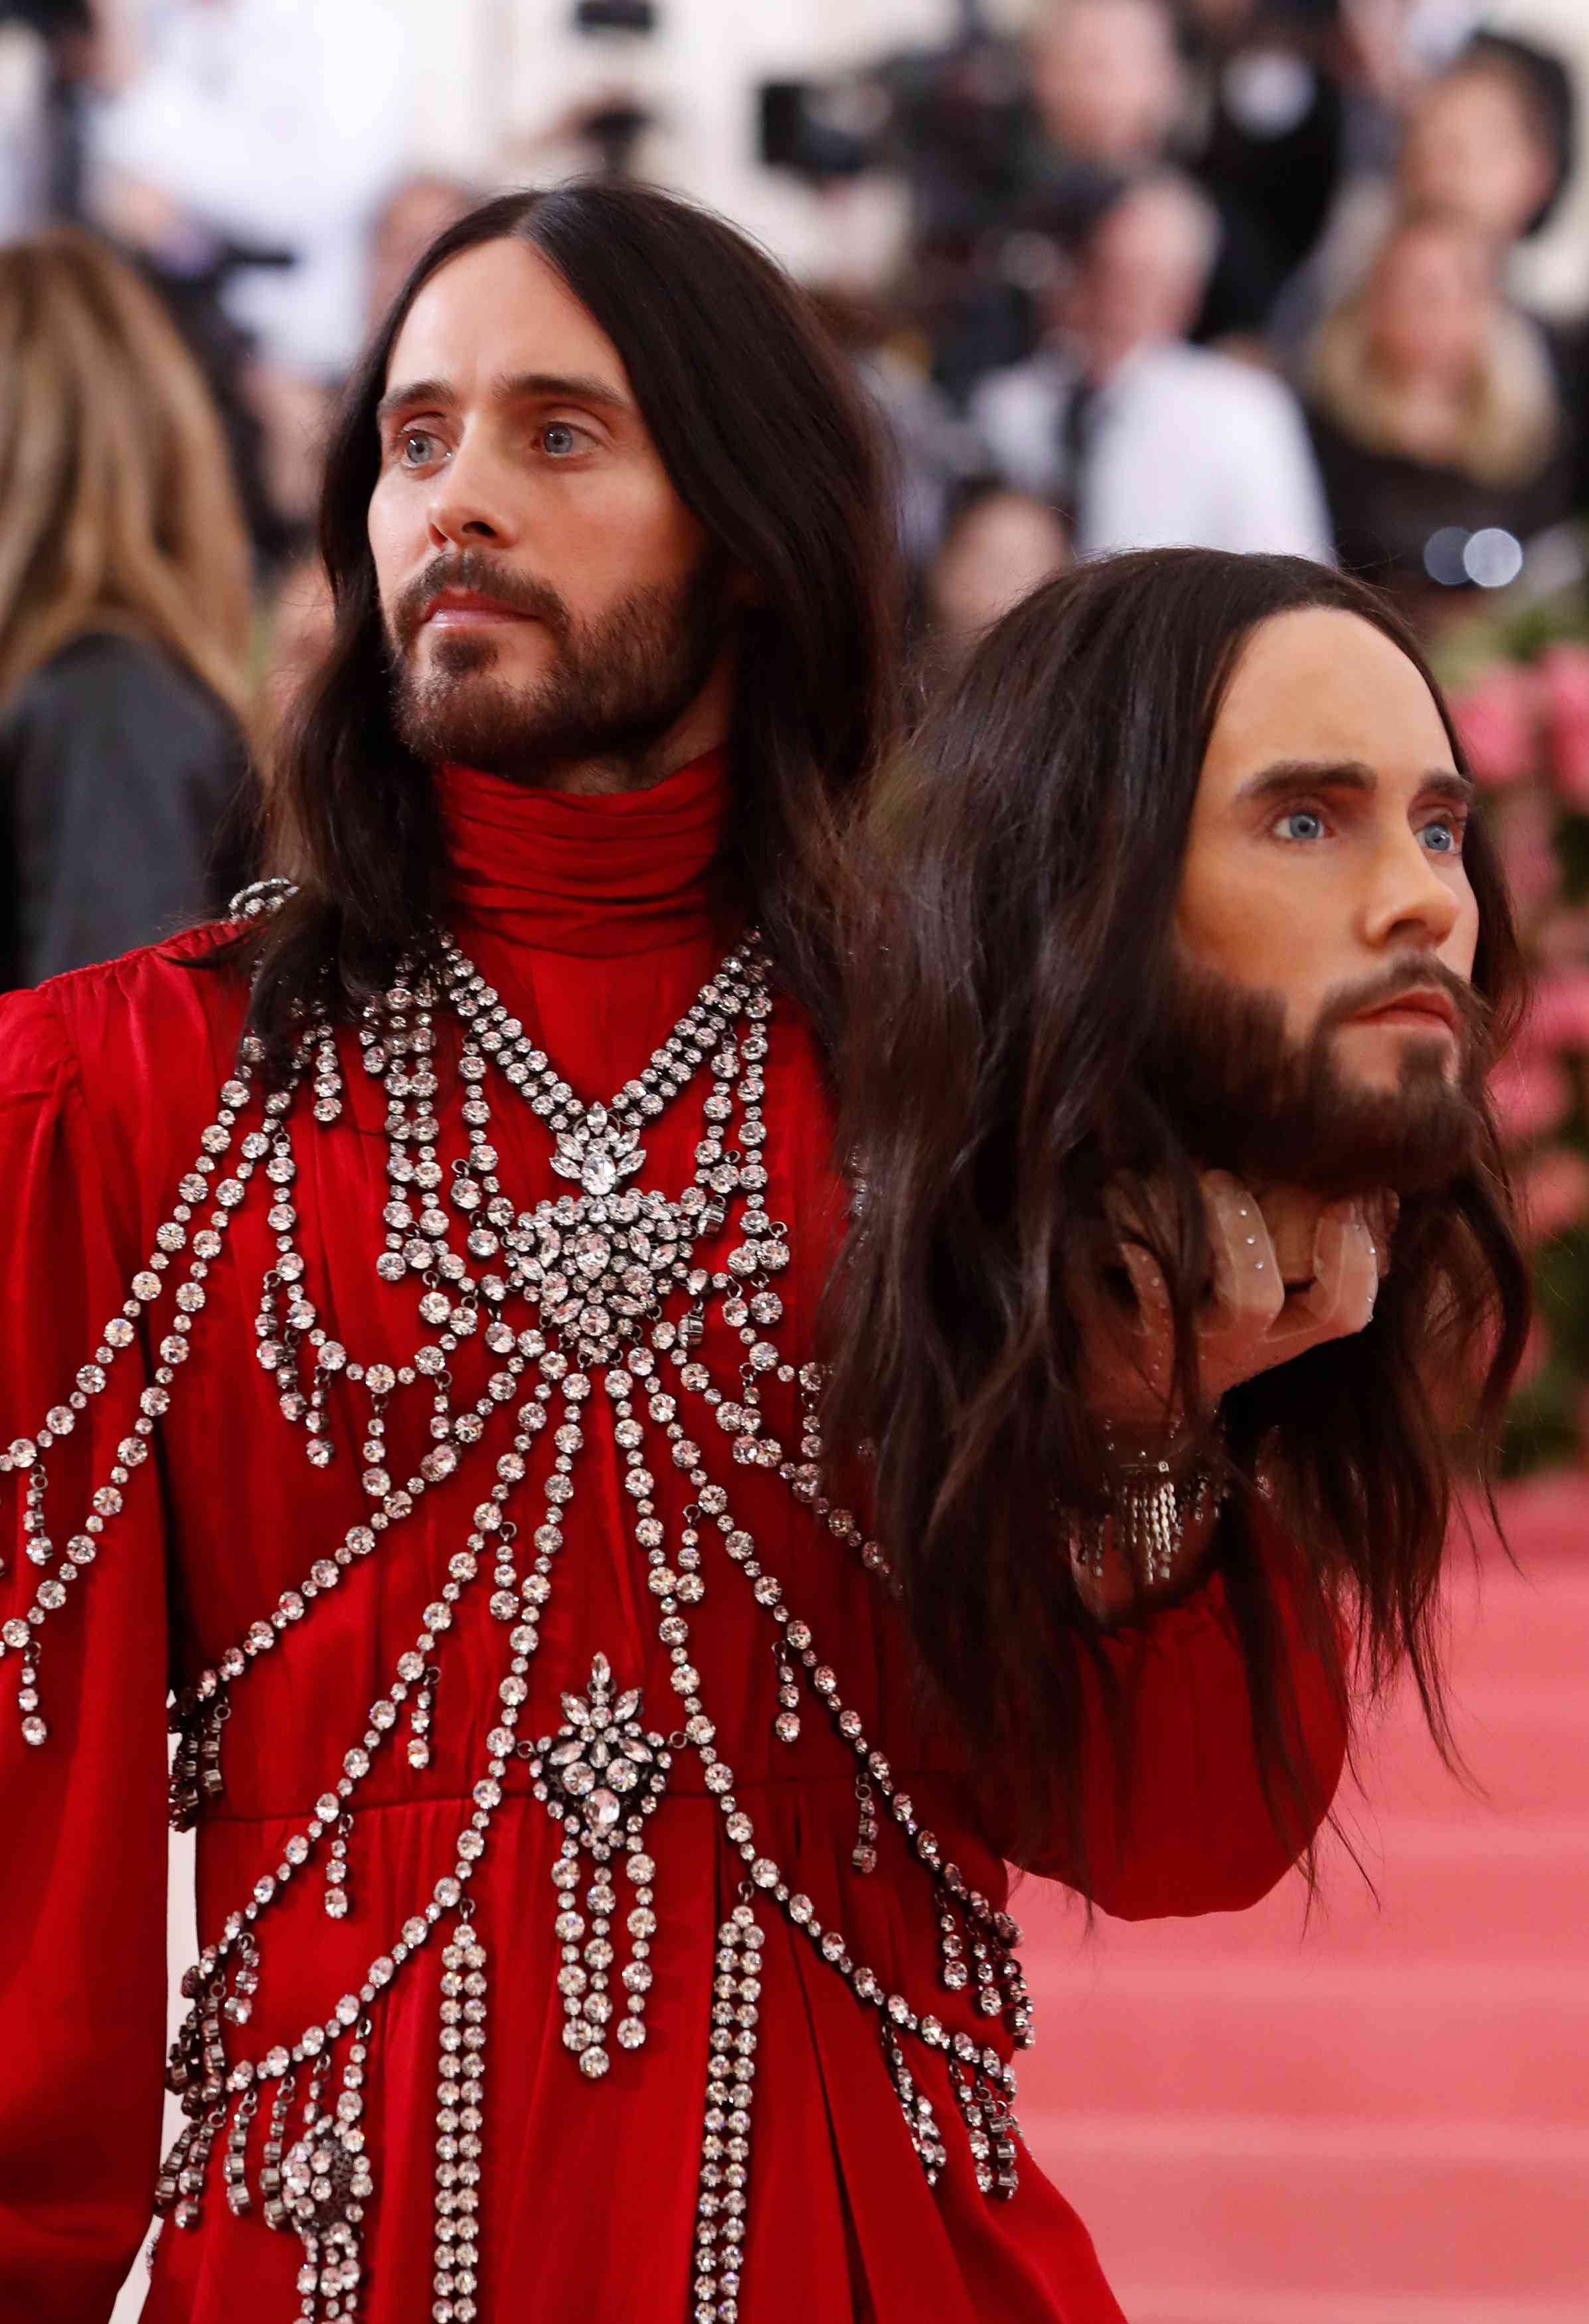 Jared Leto at the Met Gala 2019 | Image credit: Andrew Kelly / Reuters